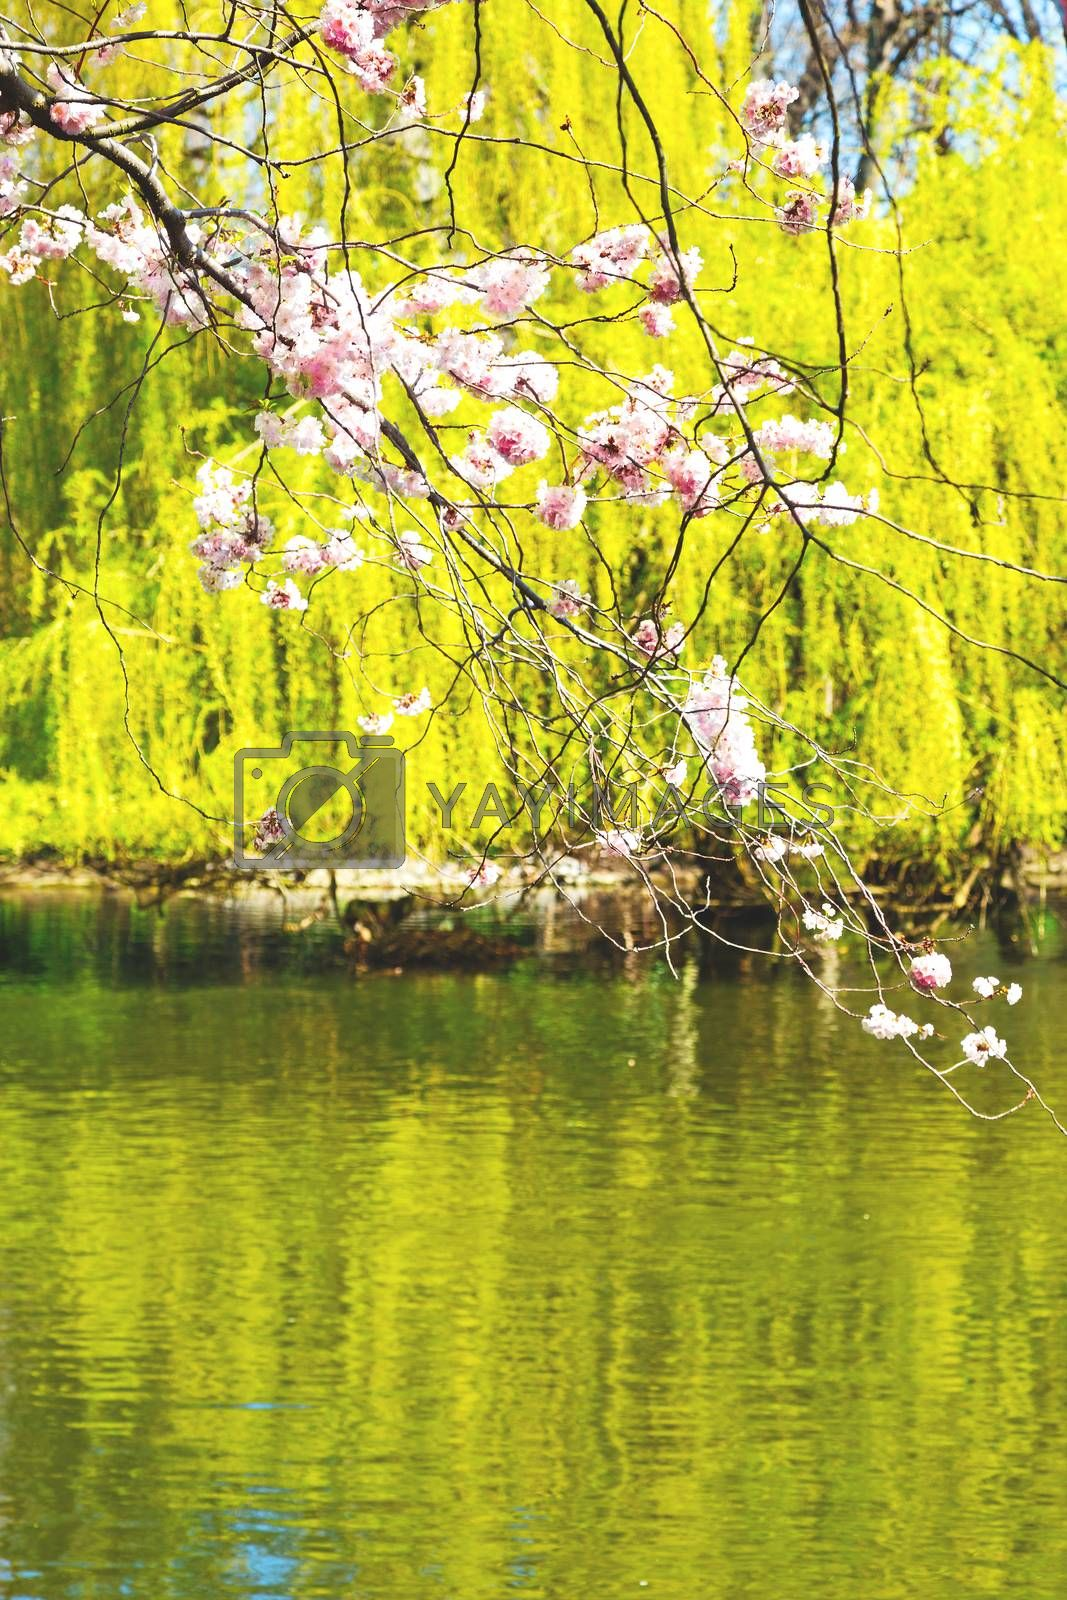 in    park the pink tree and blossom flowers natural by lkpro